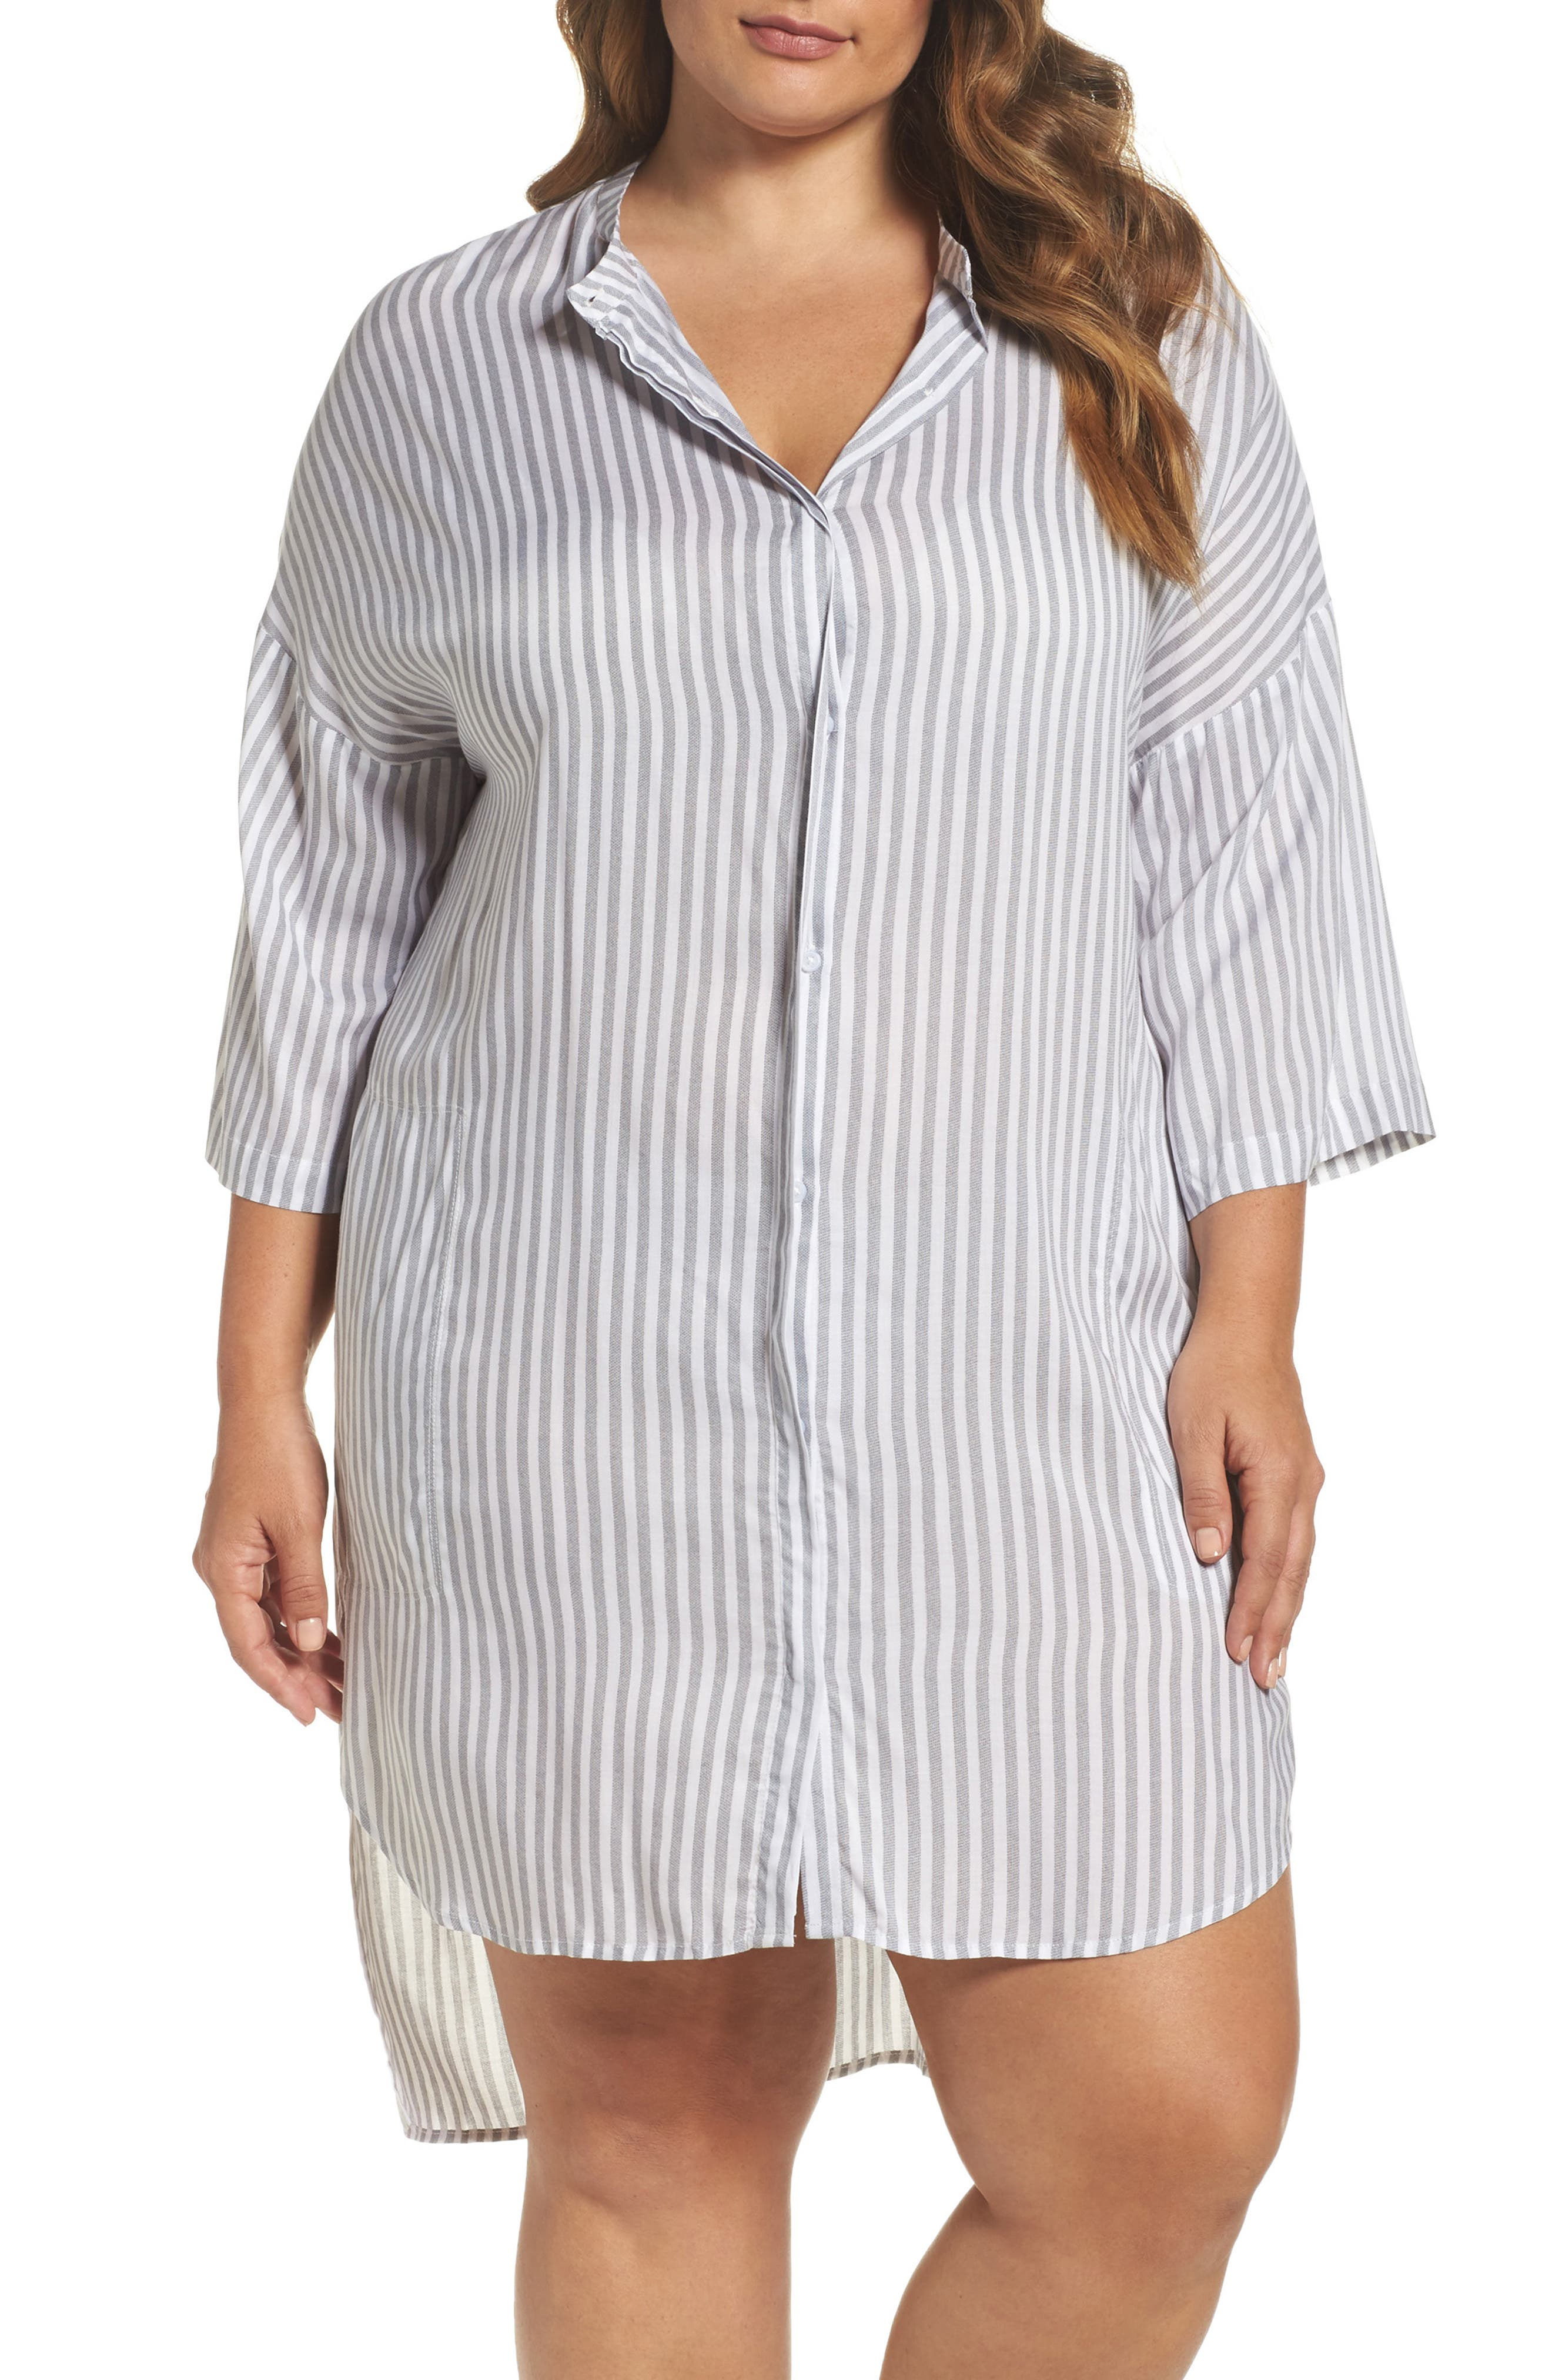 DKNY Collarless Nightshirt (Plus Size)